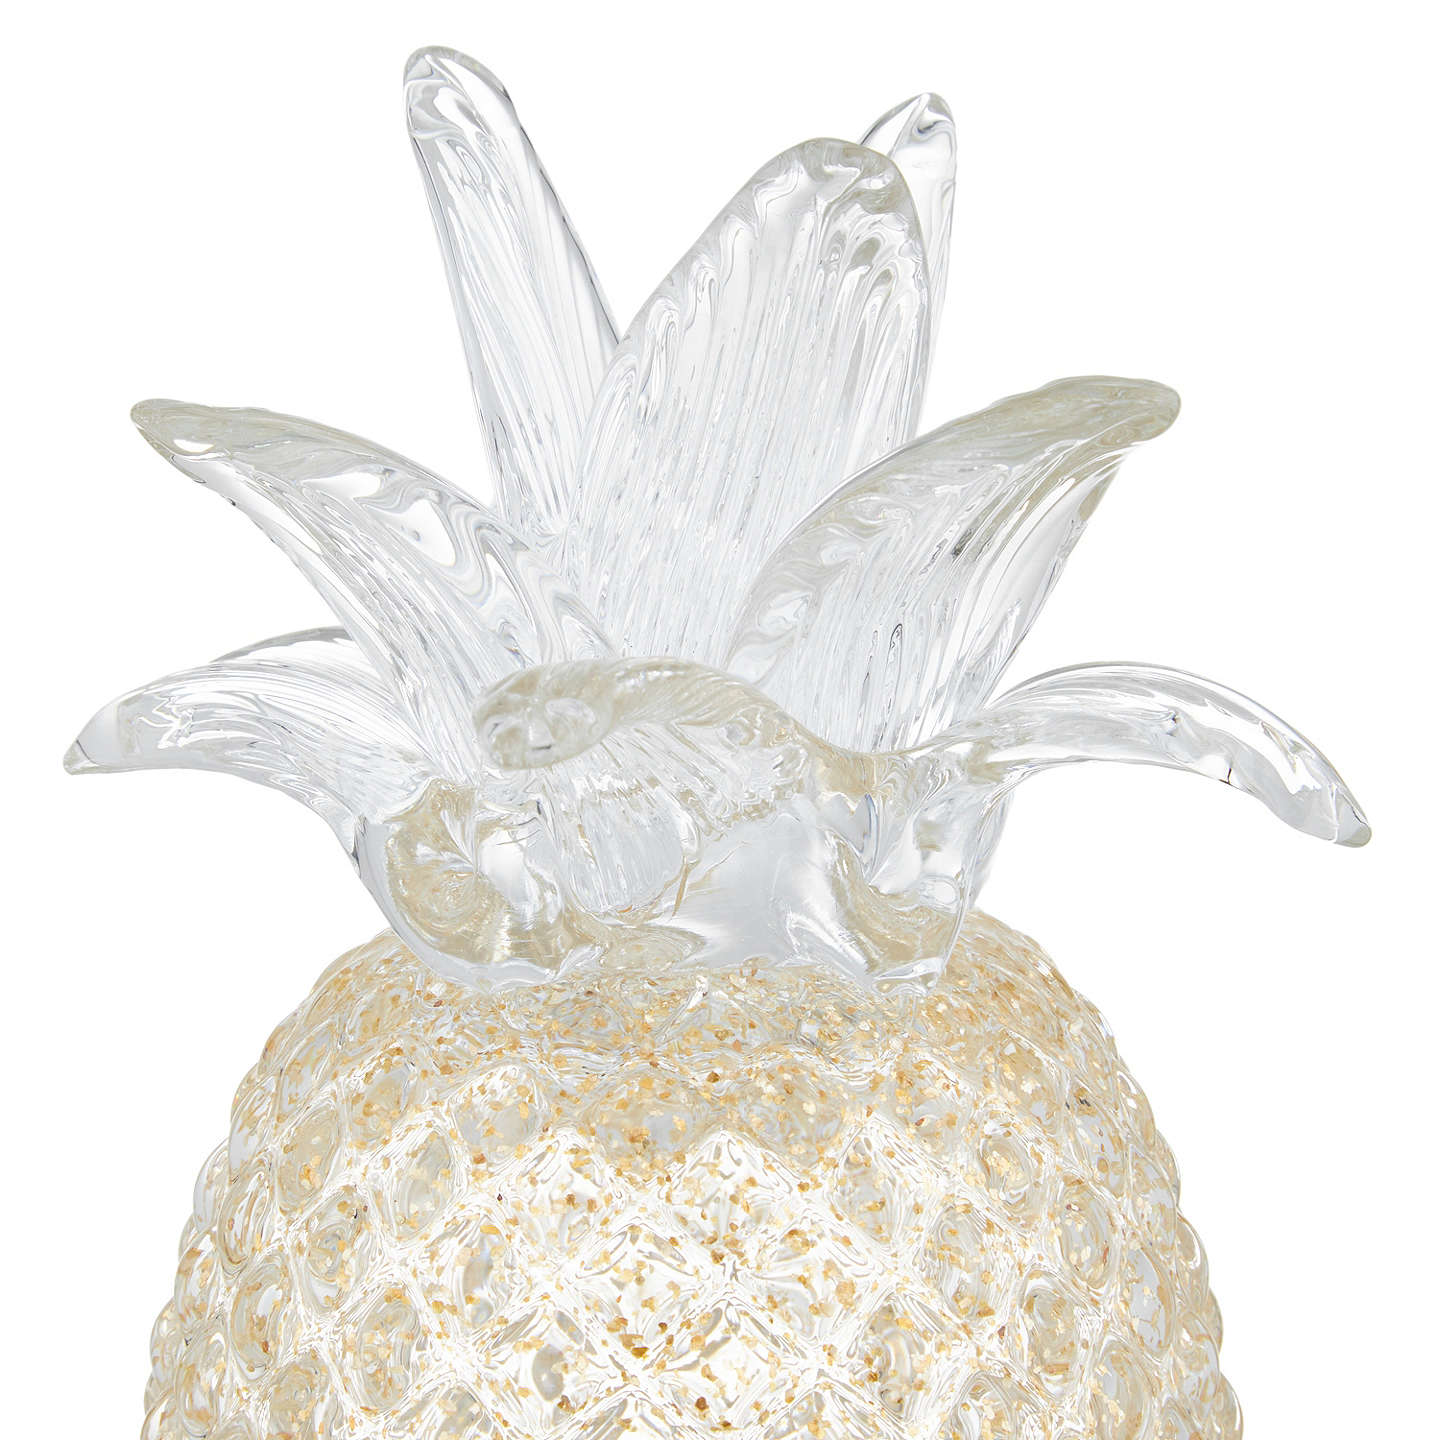 BuyJohn Lewis Hotel Glass Pineapple, Gold Online at johnlewis.com